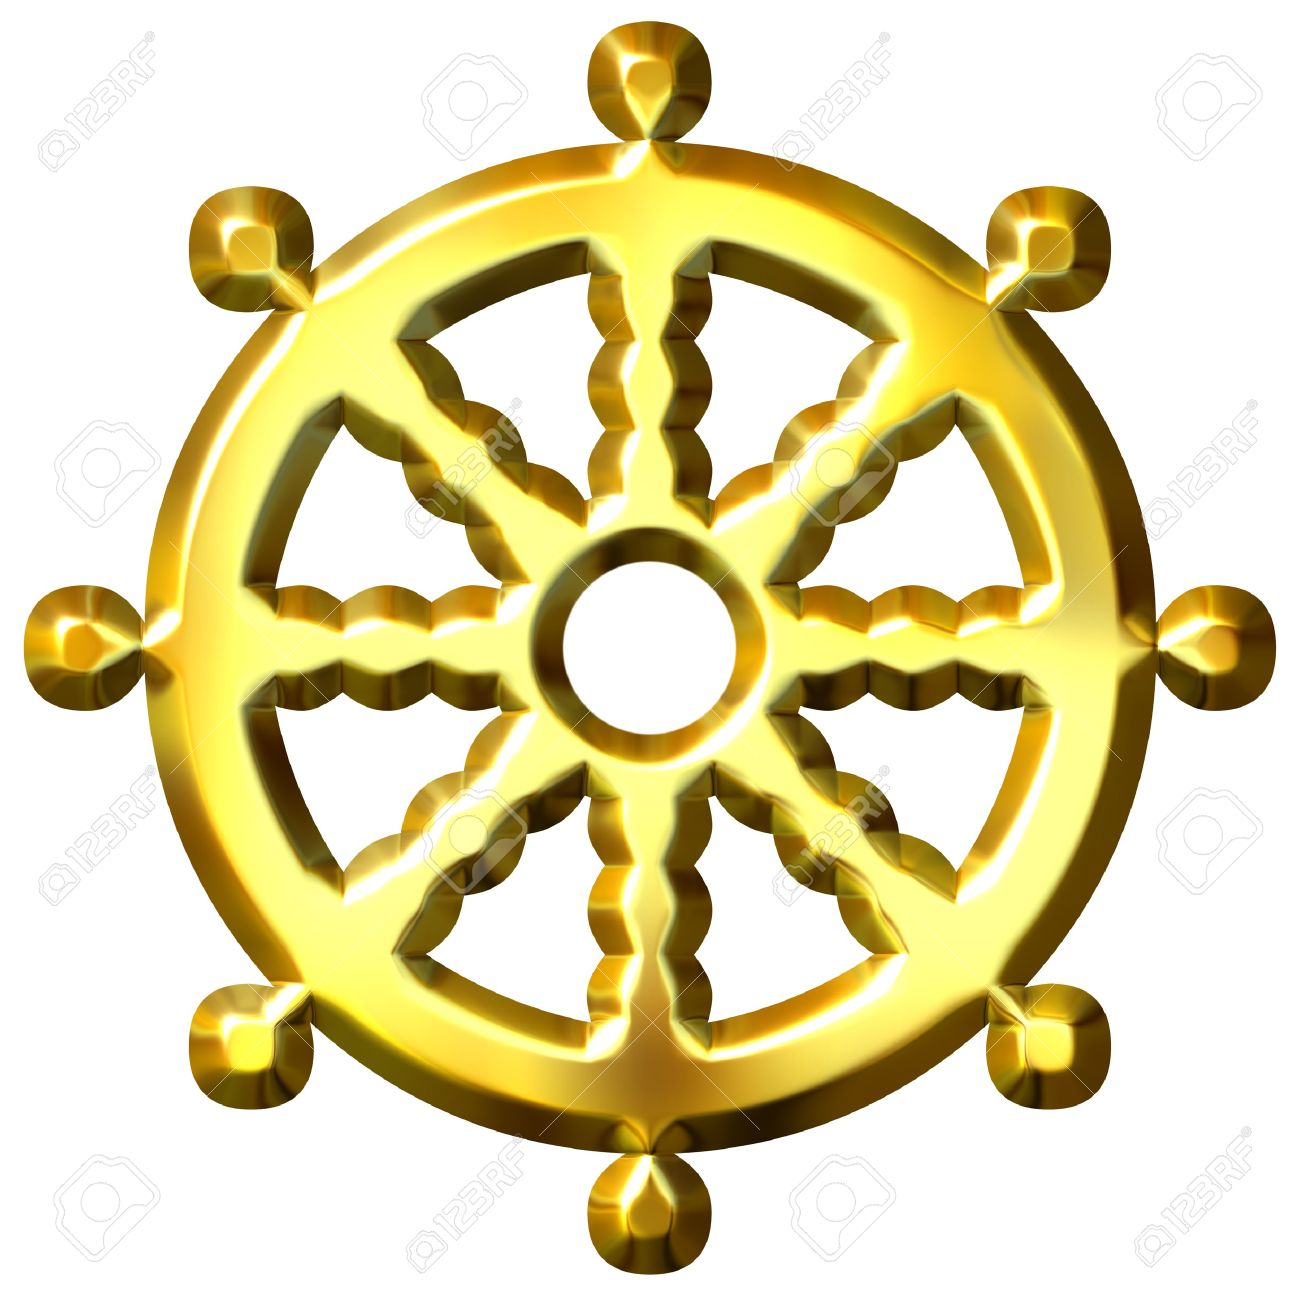 3d Golden Buddhism Symbol Wheel Of Dharma Isolated In White ...